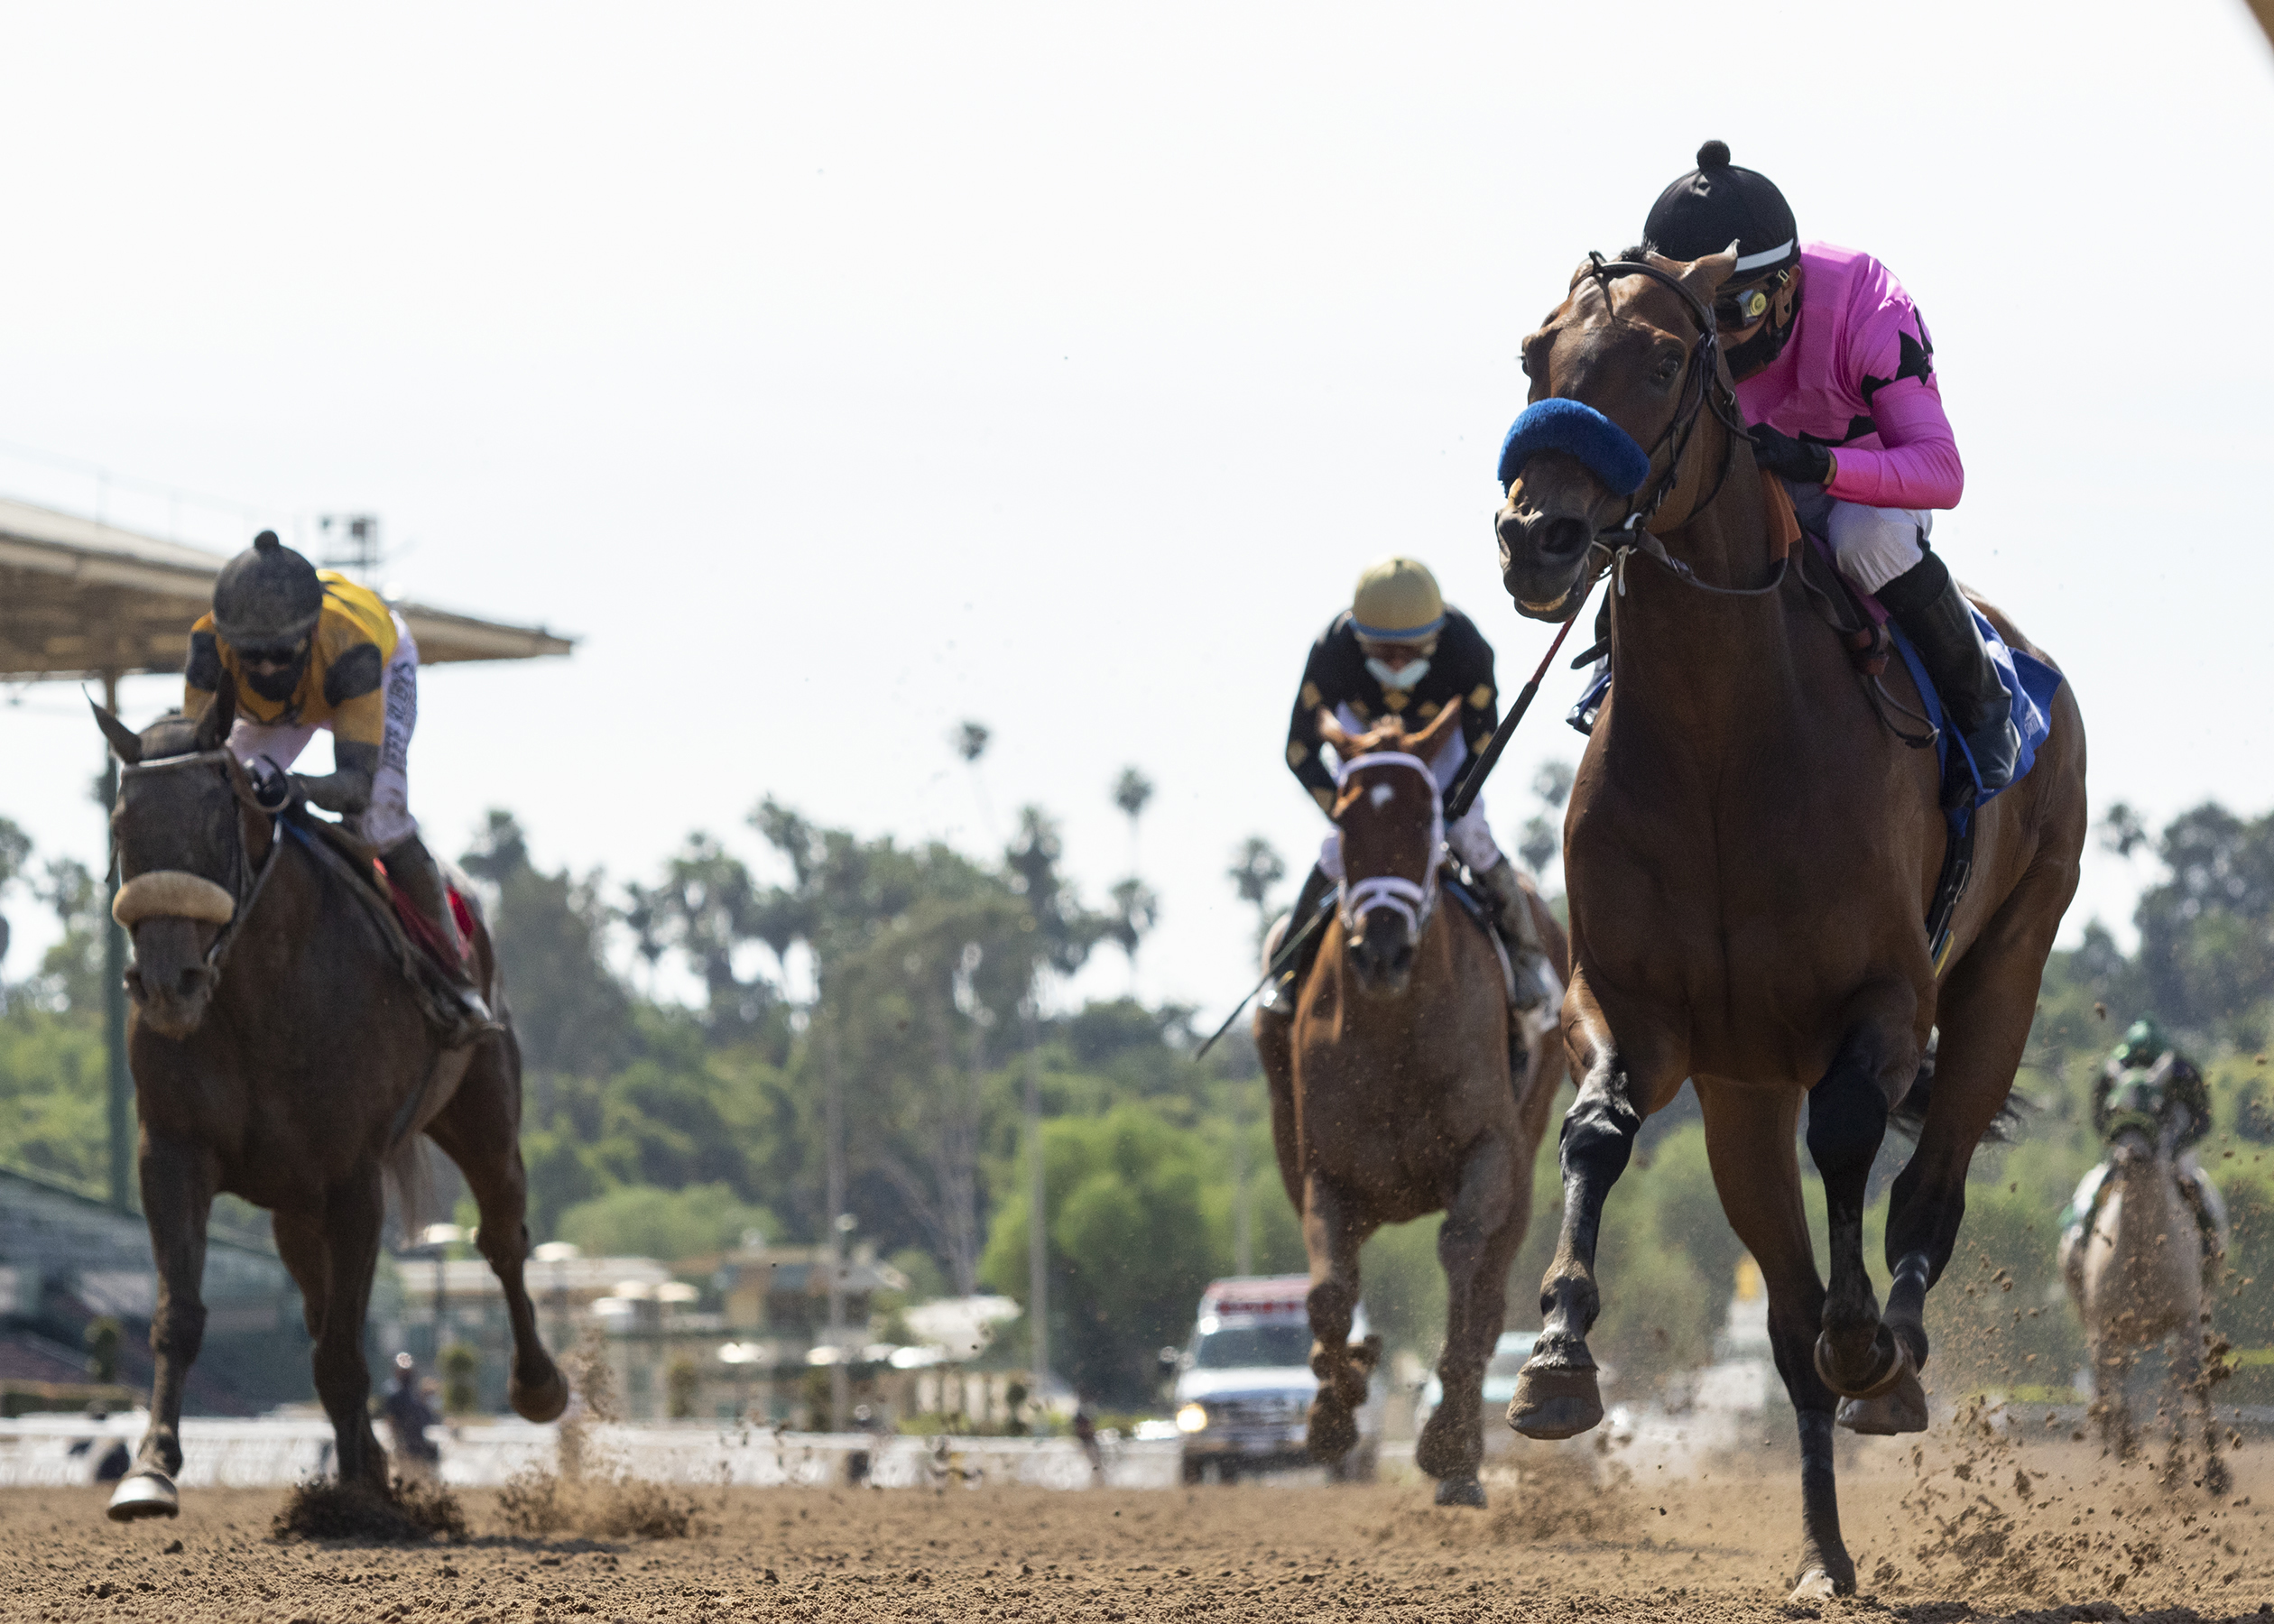 5 Tips To Help Win Through Horse Racing